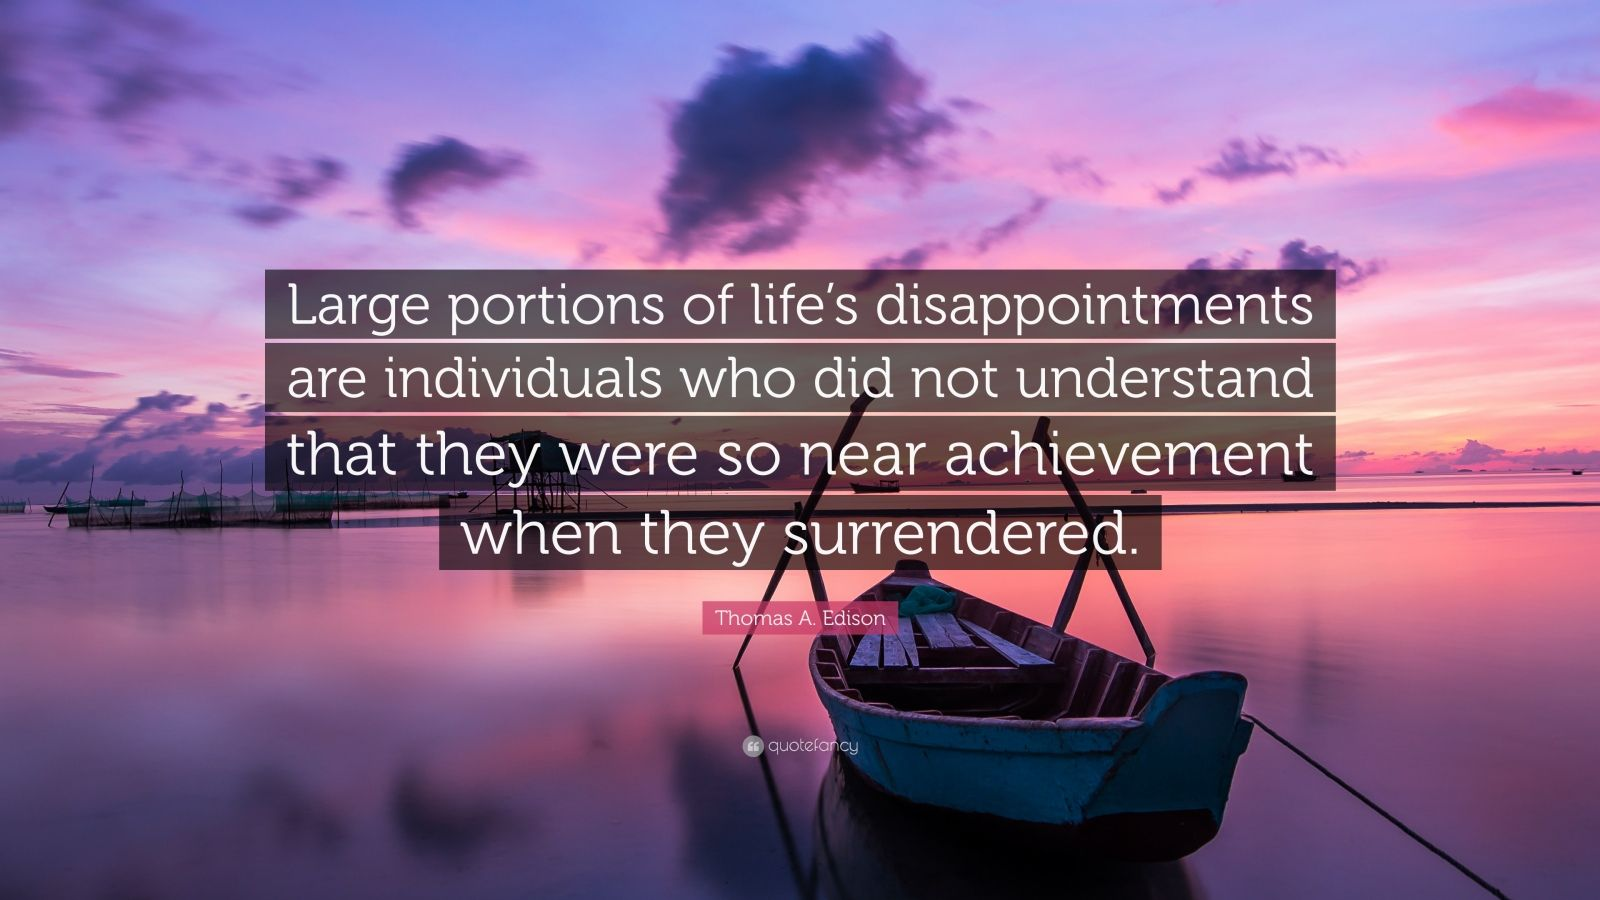 """Thomas A. Edison Quote: """"Large portions of life's disappointments are individuals who did not understand that they were so near achievement when they surrendered."""""""